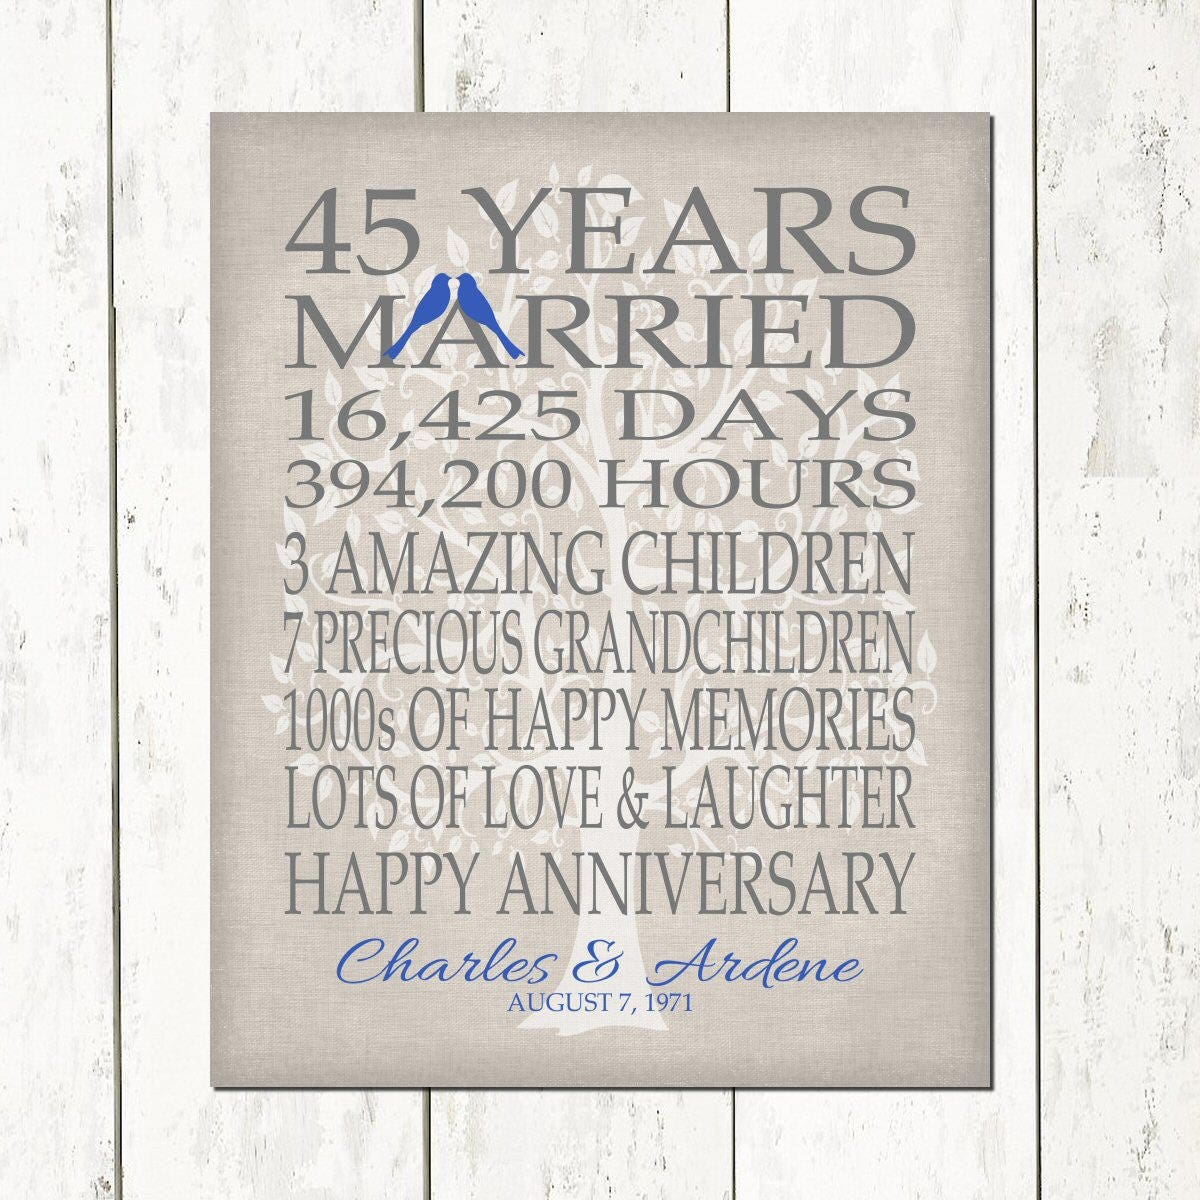 Wedding Anniversary Gift For Parents: 45th Wedding Anniversary Gift For Parents Sapphire Anniversary